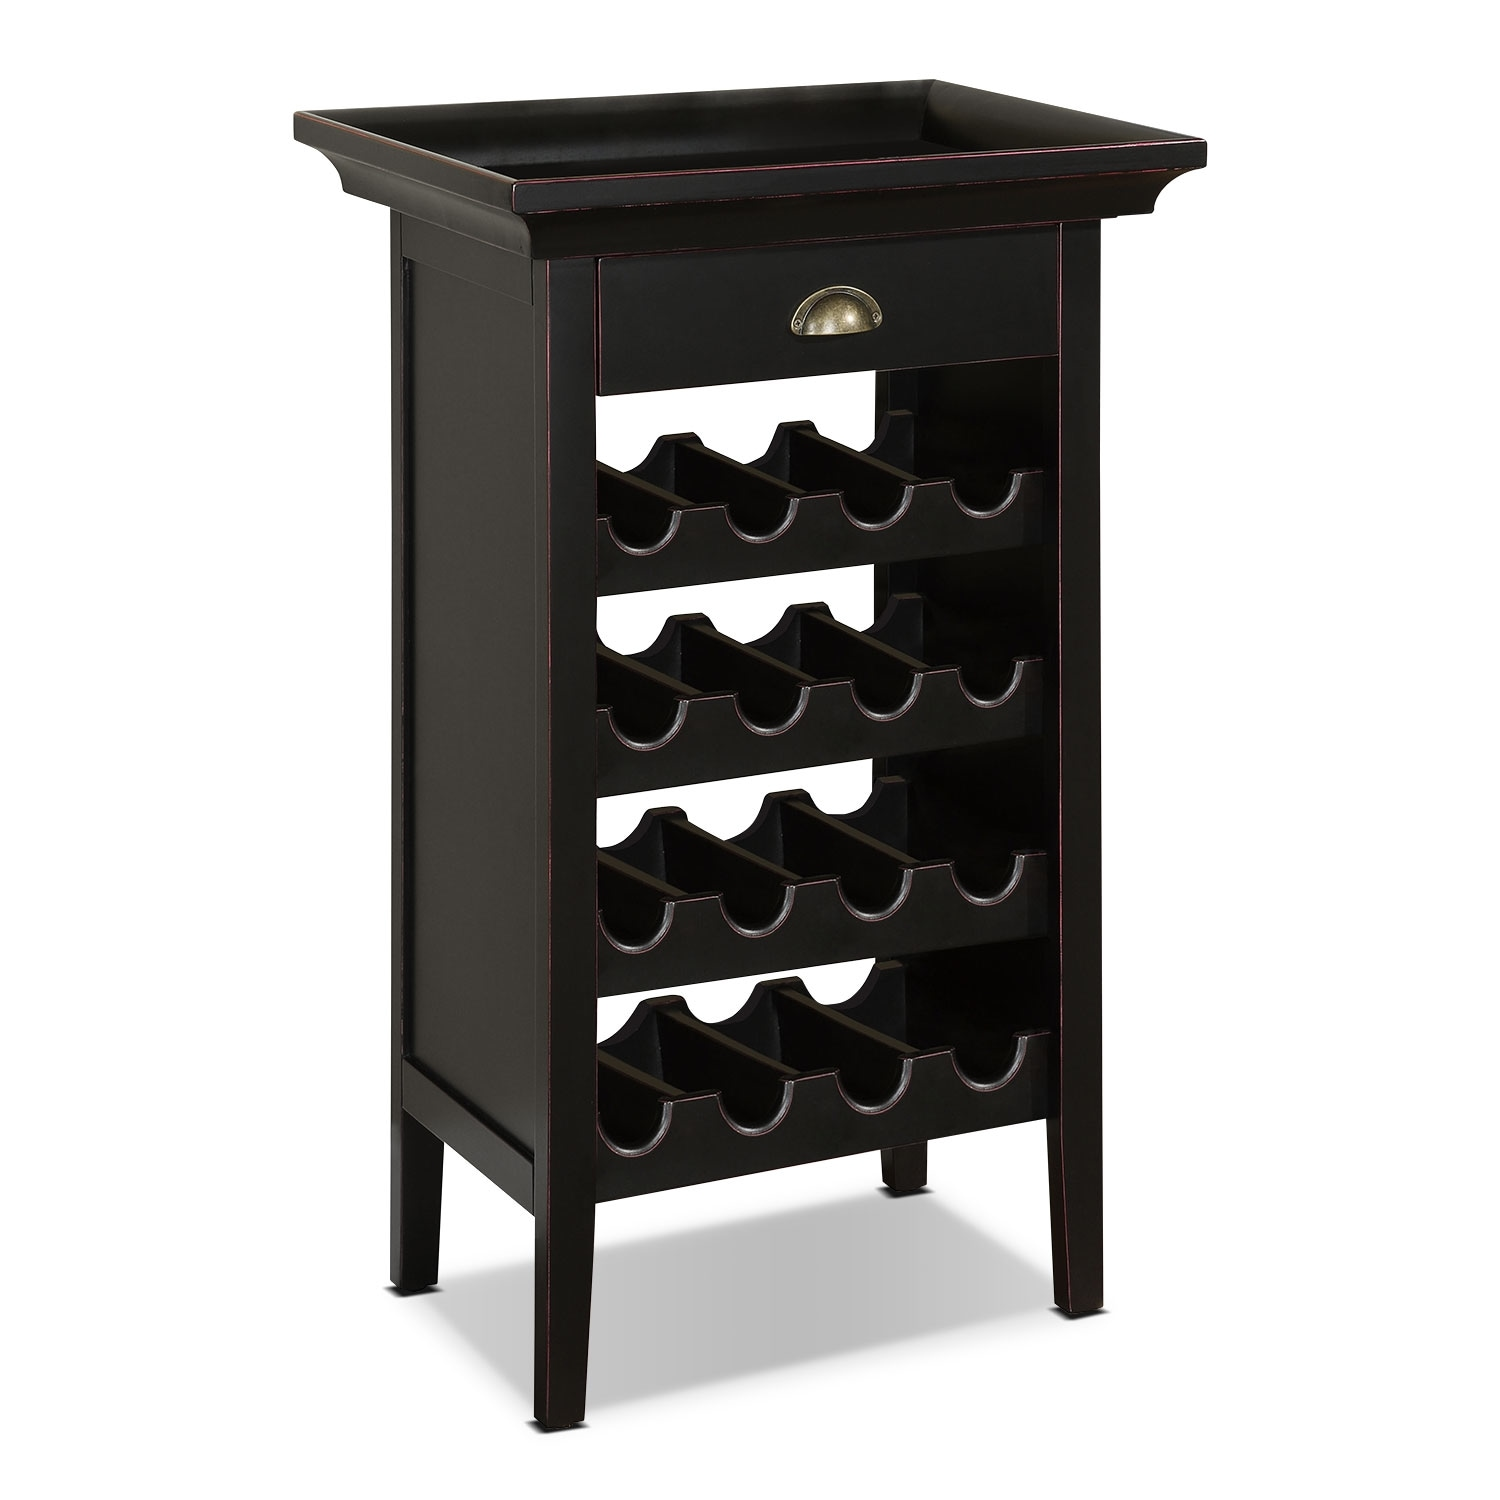 East Point Wine Cabinet - Black